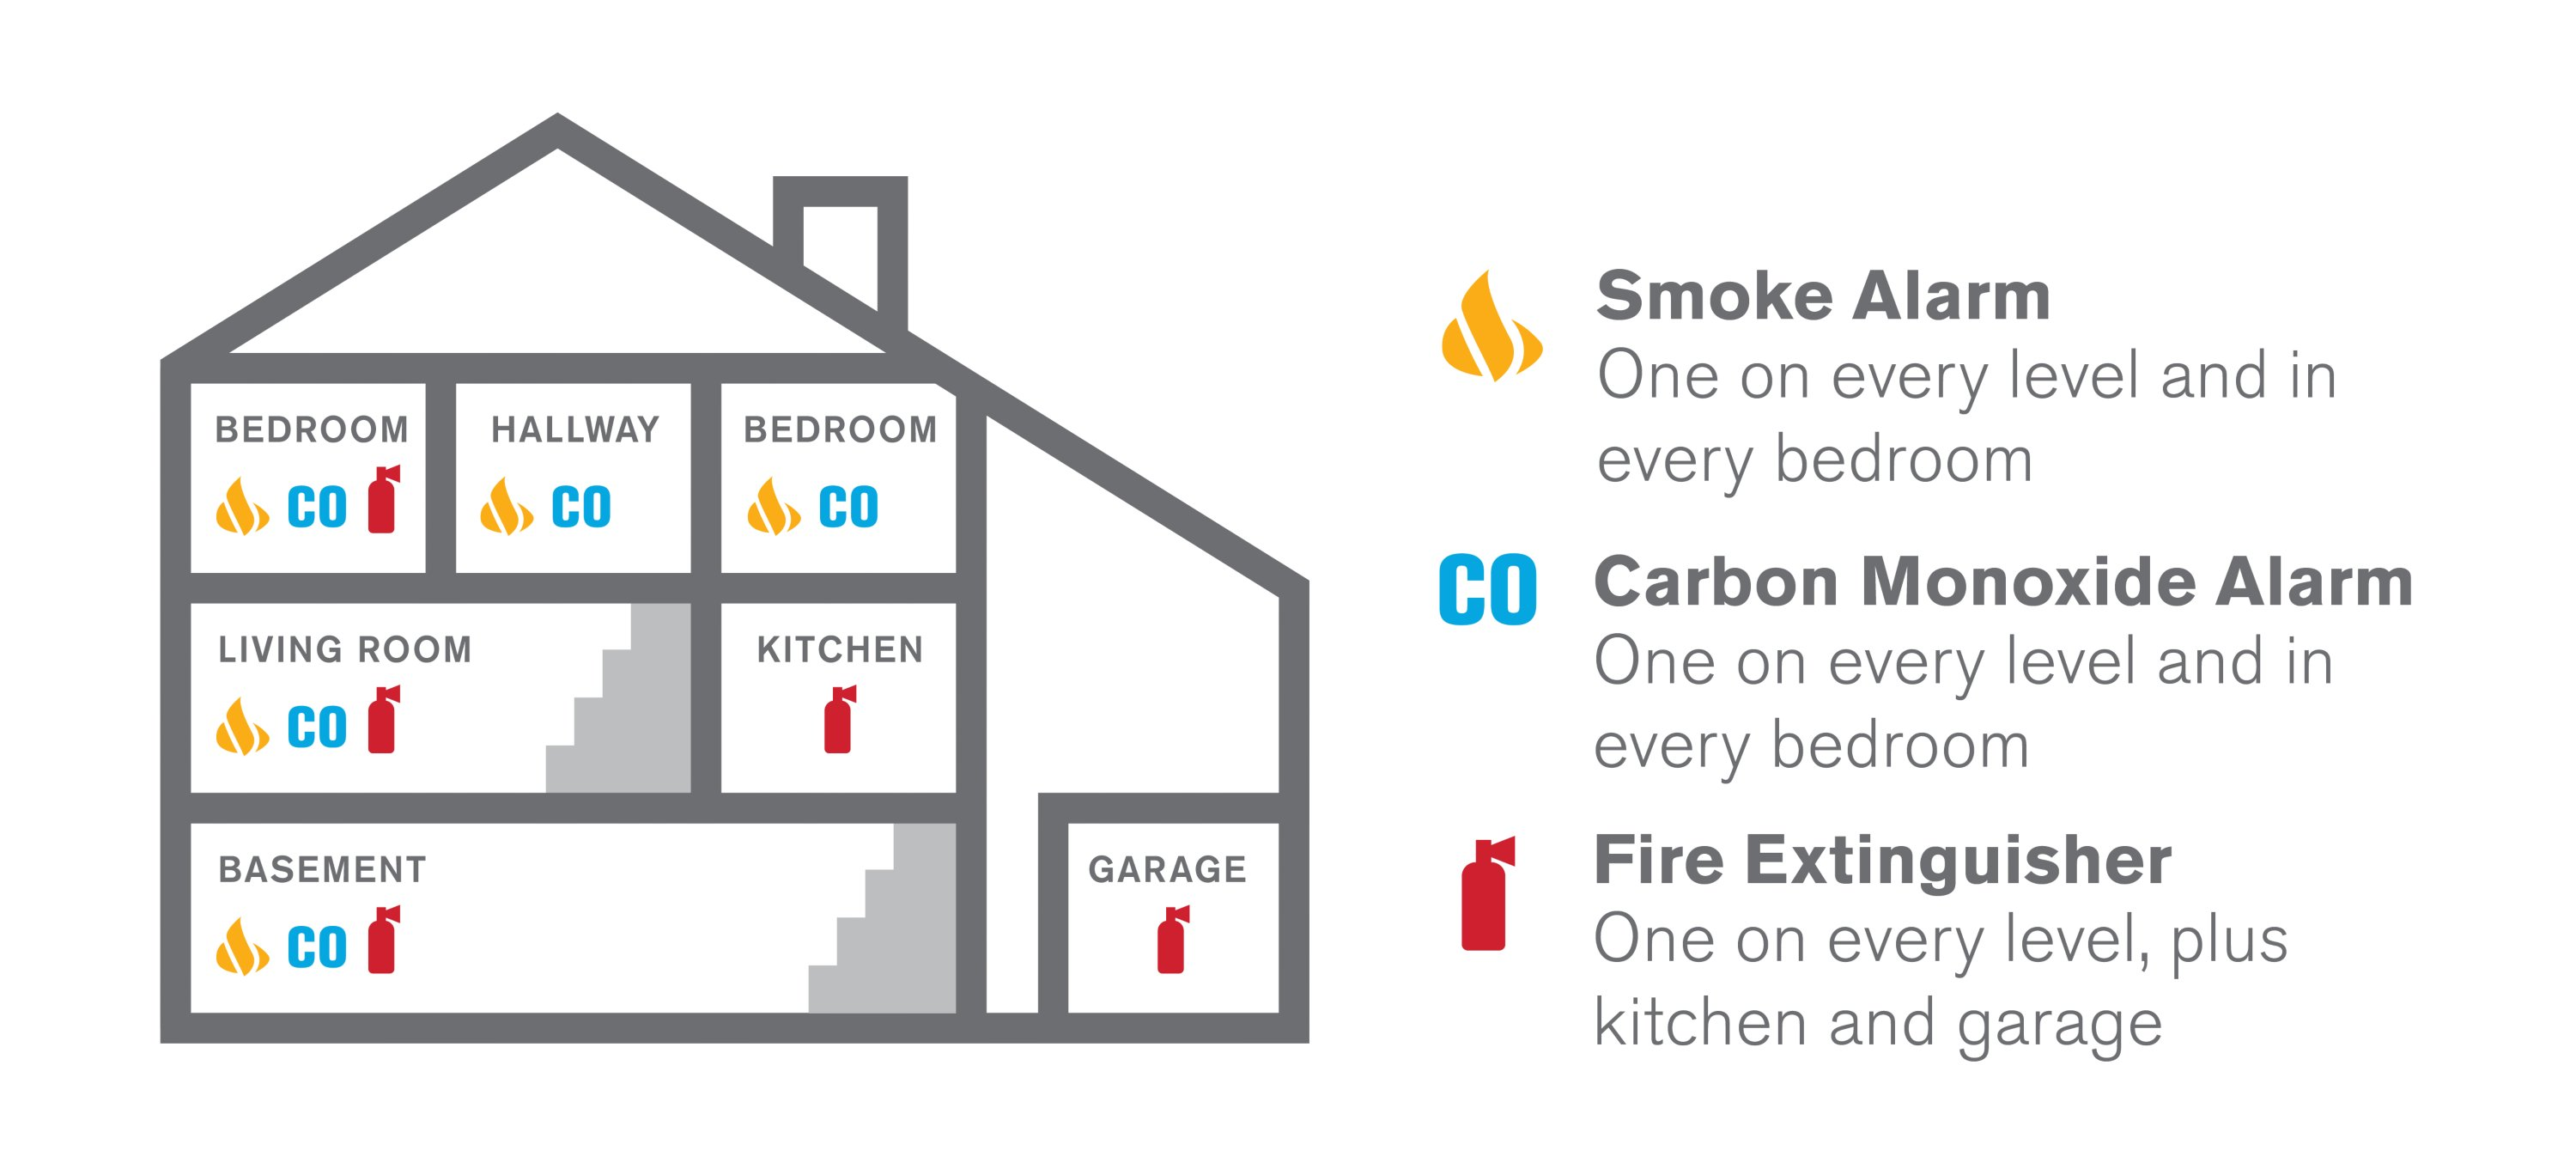 Where to Place Smoke Alarms, CO Detectors & Fire Extinguishers